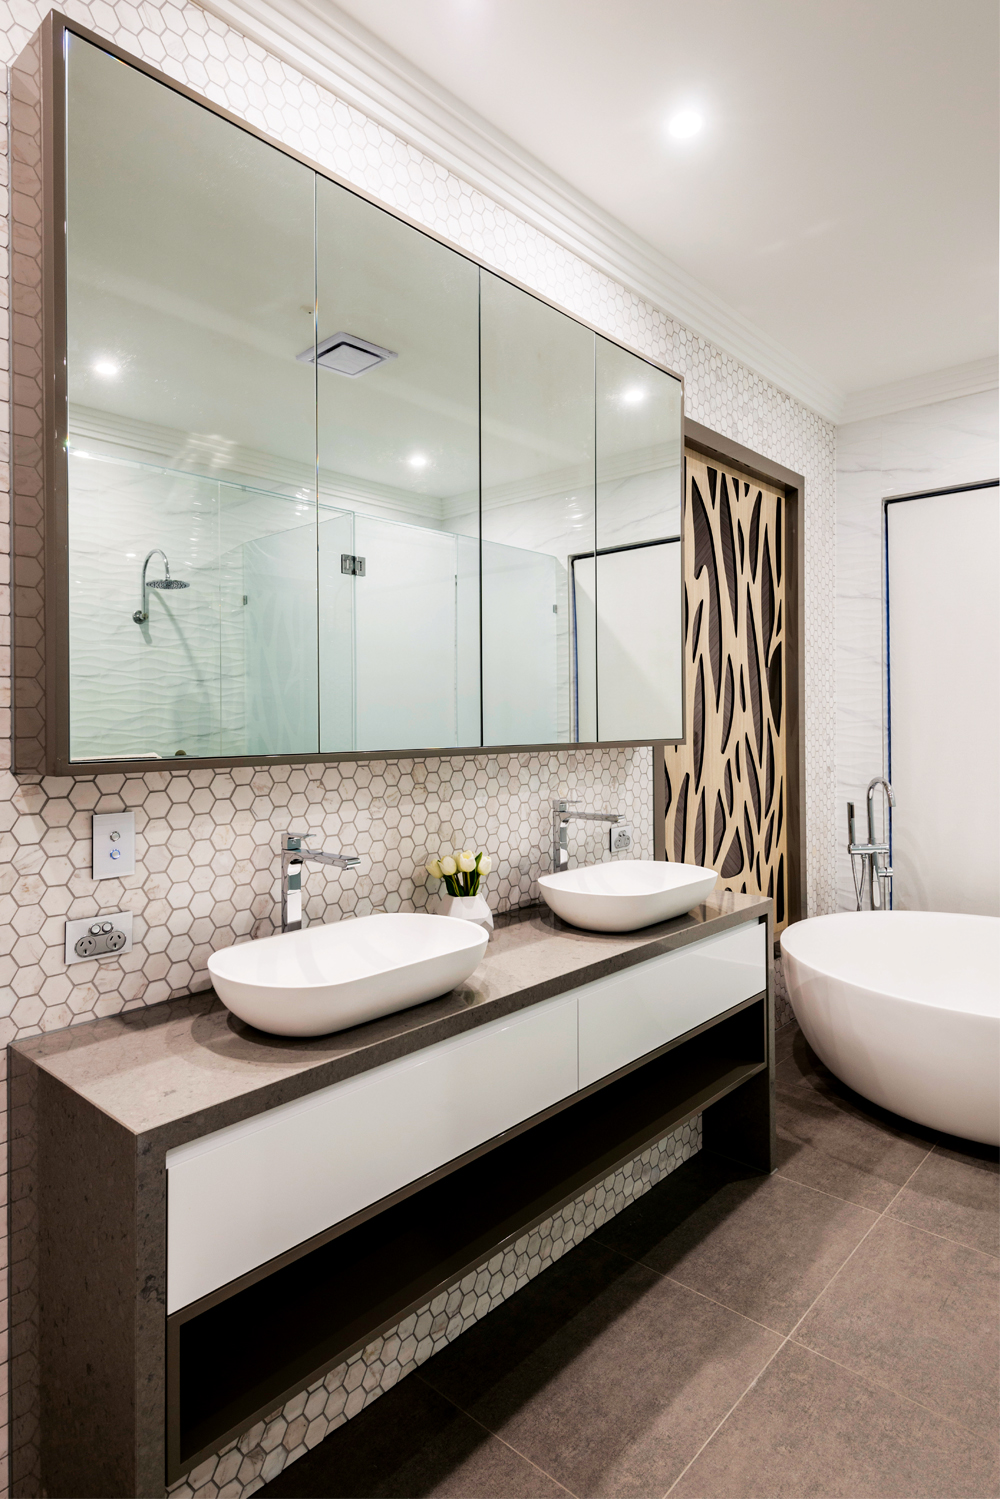 Luxe living: an elegant contemporary bathroom - vanity and mirror view 2 Germancraft